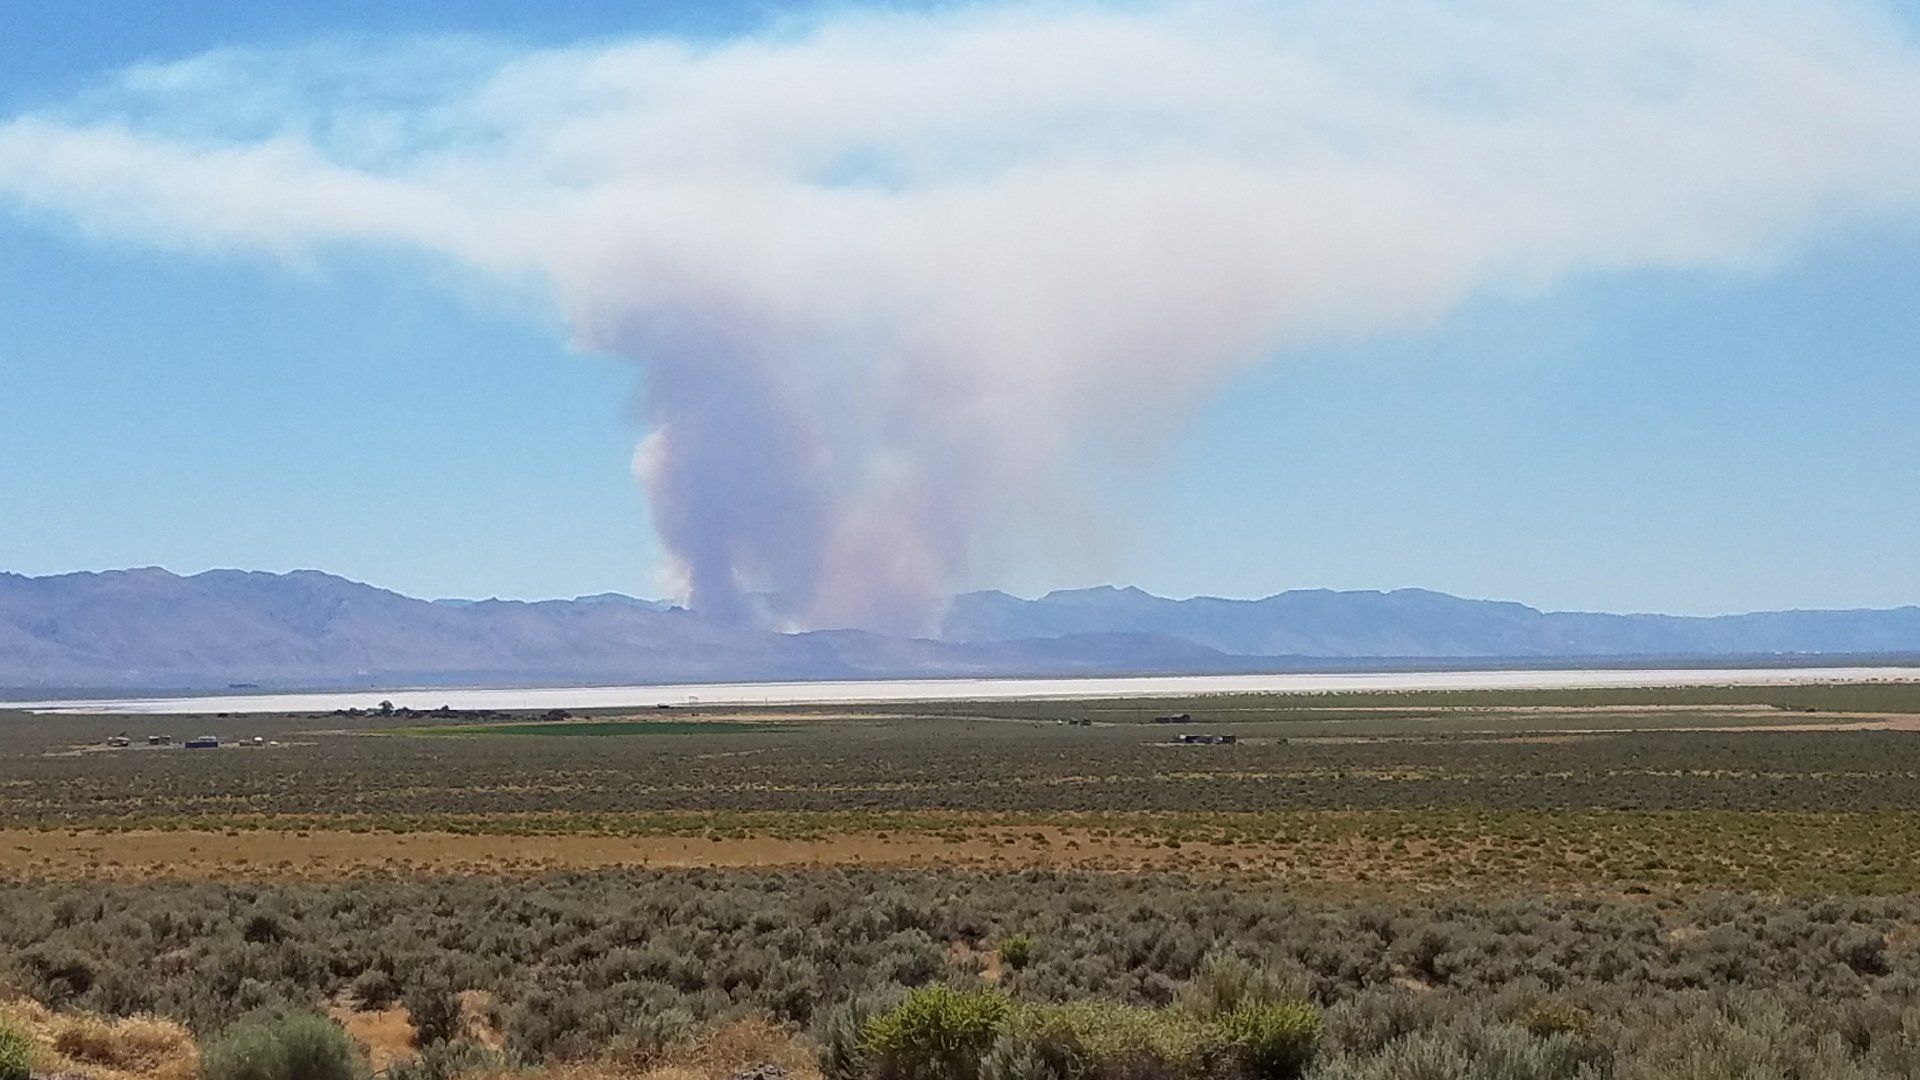 Wildfire sparks north of Doyle, Calif. on July 11, 2017. This photo was taken from Fish Springs Road looking west. (Photo courtesy: Kimberly Noell)